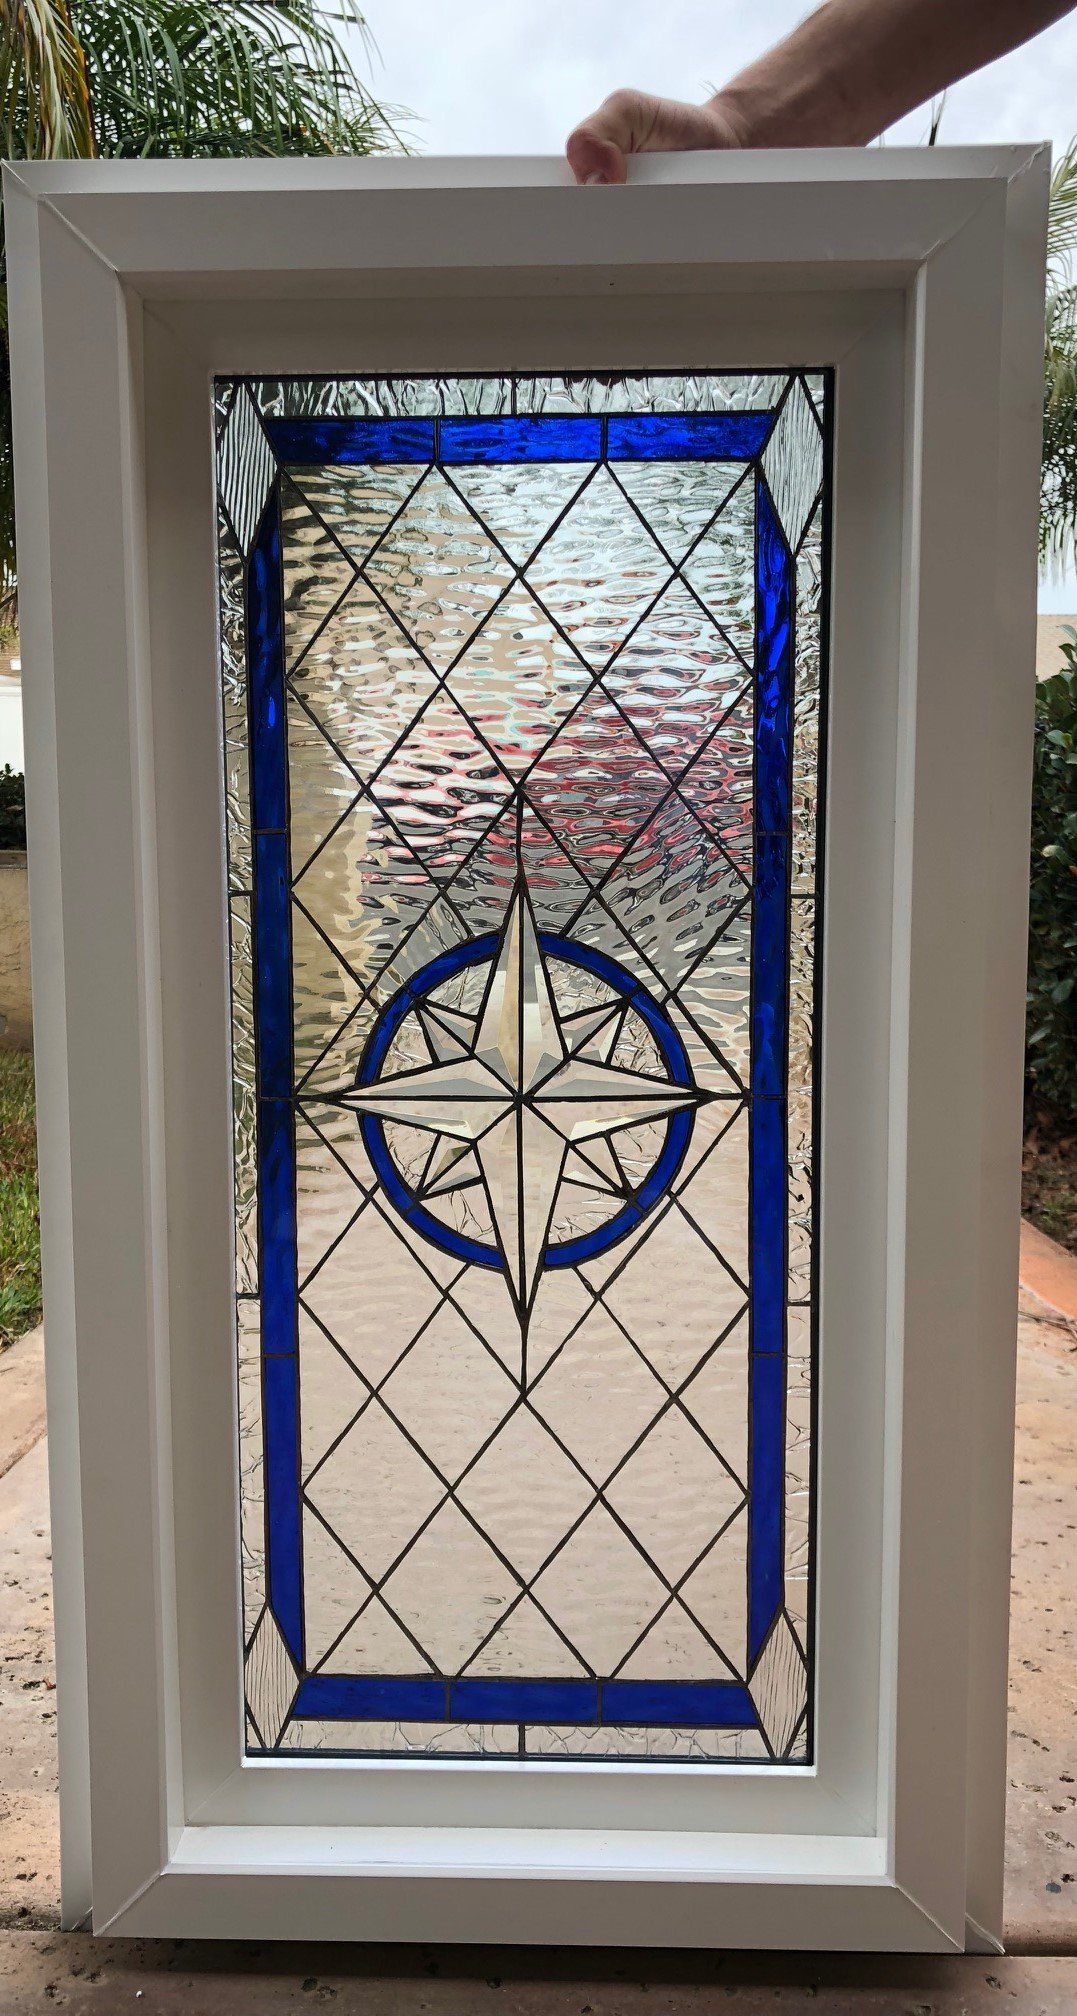 Compass rose beveled leaded stained glass window